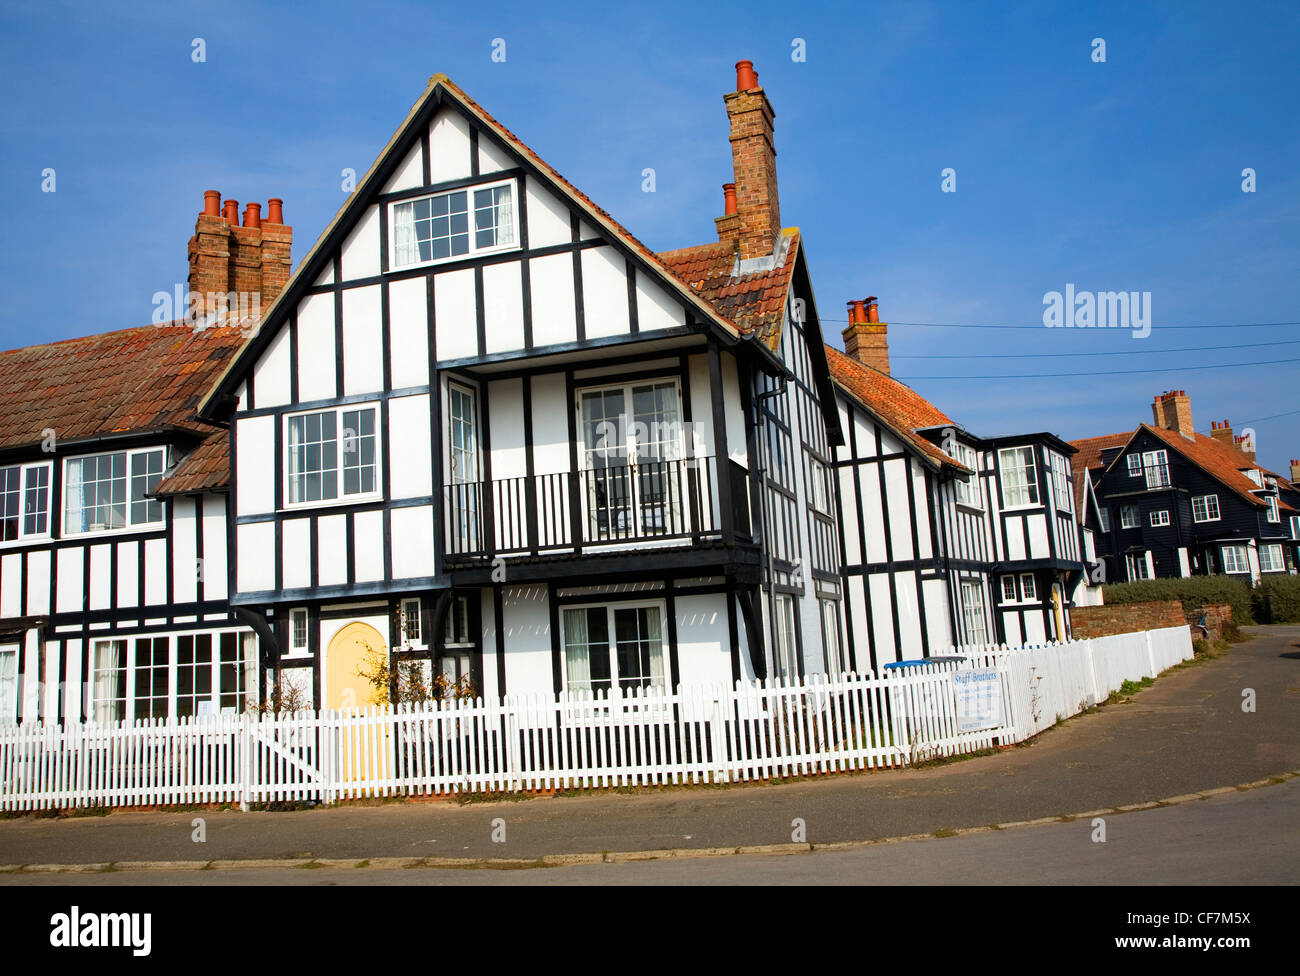 Mock Tudor houses in Thorpeness, Suffolk, England - Stock Image